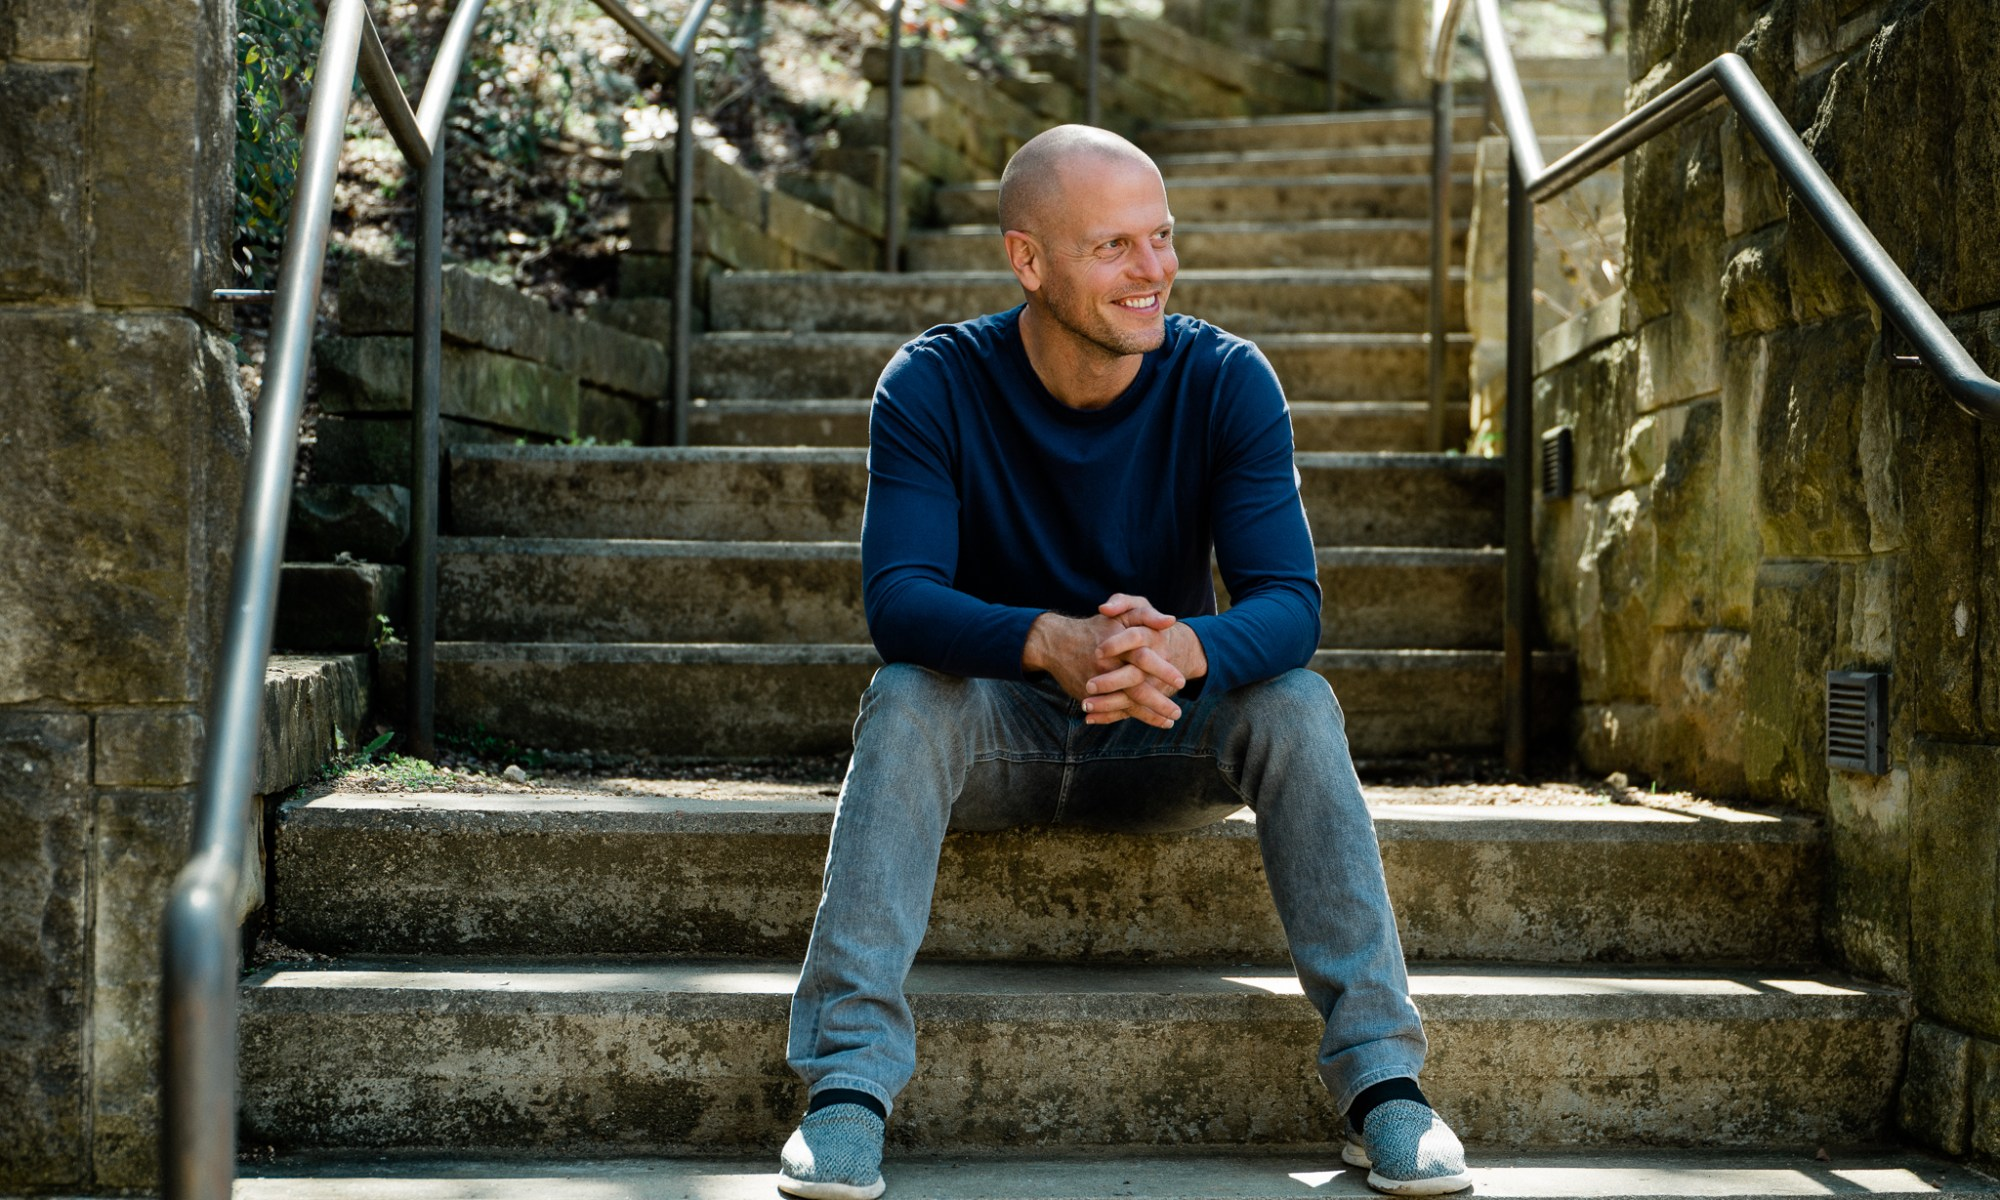 Tim Ferriss sitting outdoors on some stone steps and smiling.